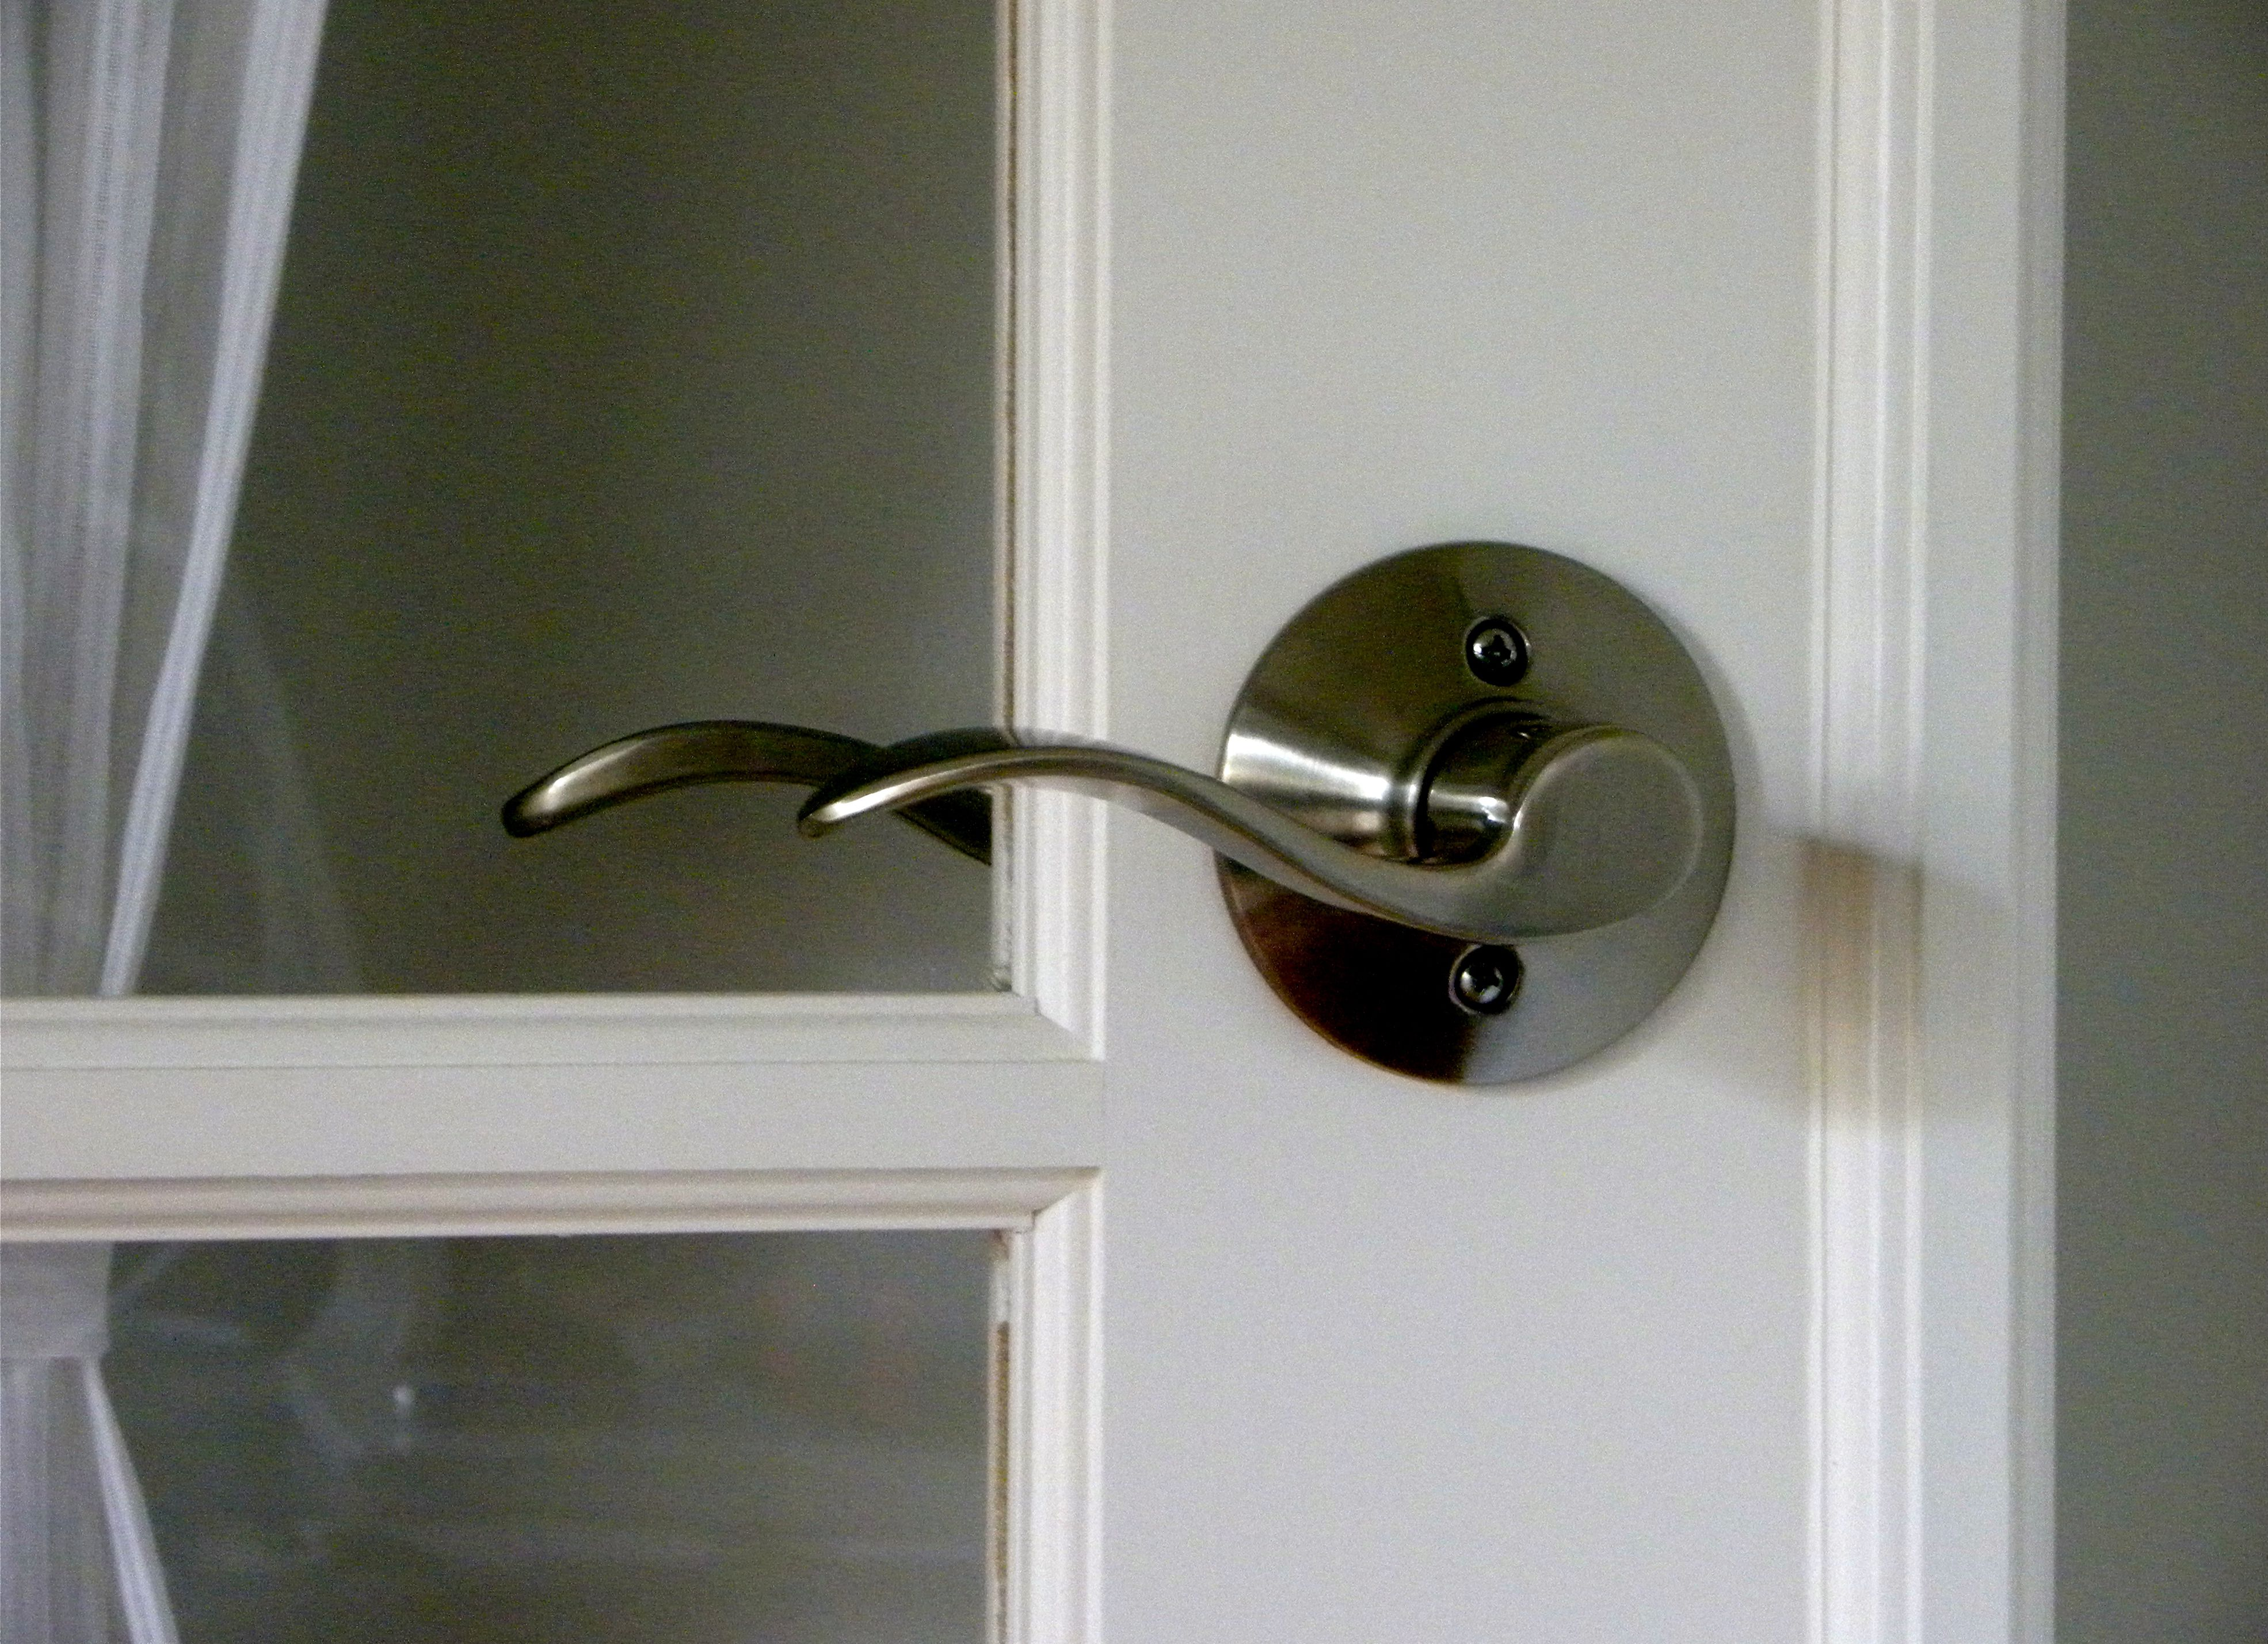 The metal door handle for pvc interior doors